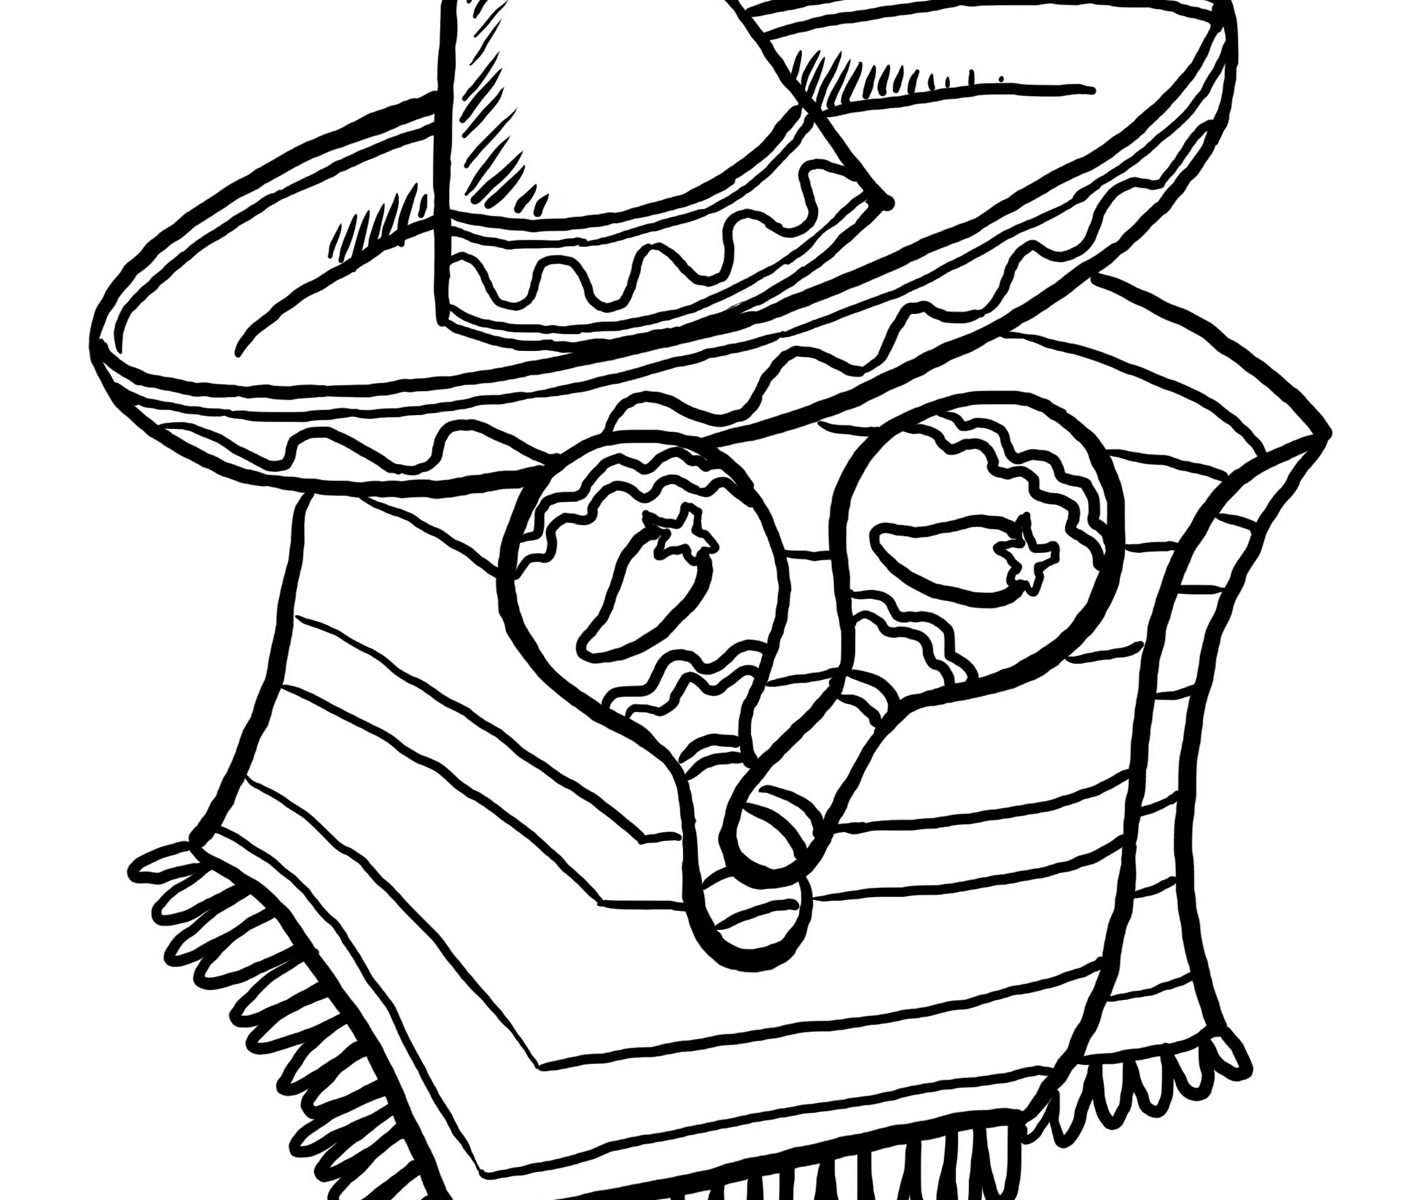 1410x1200 Coloring Pages For Tags Collie Large Size Of Gorgeous Mexican Food